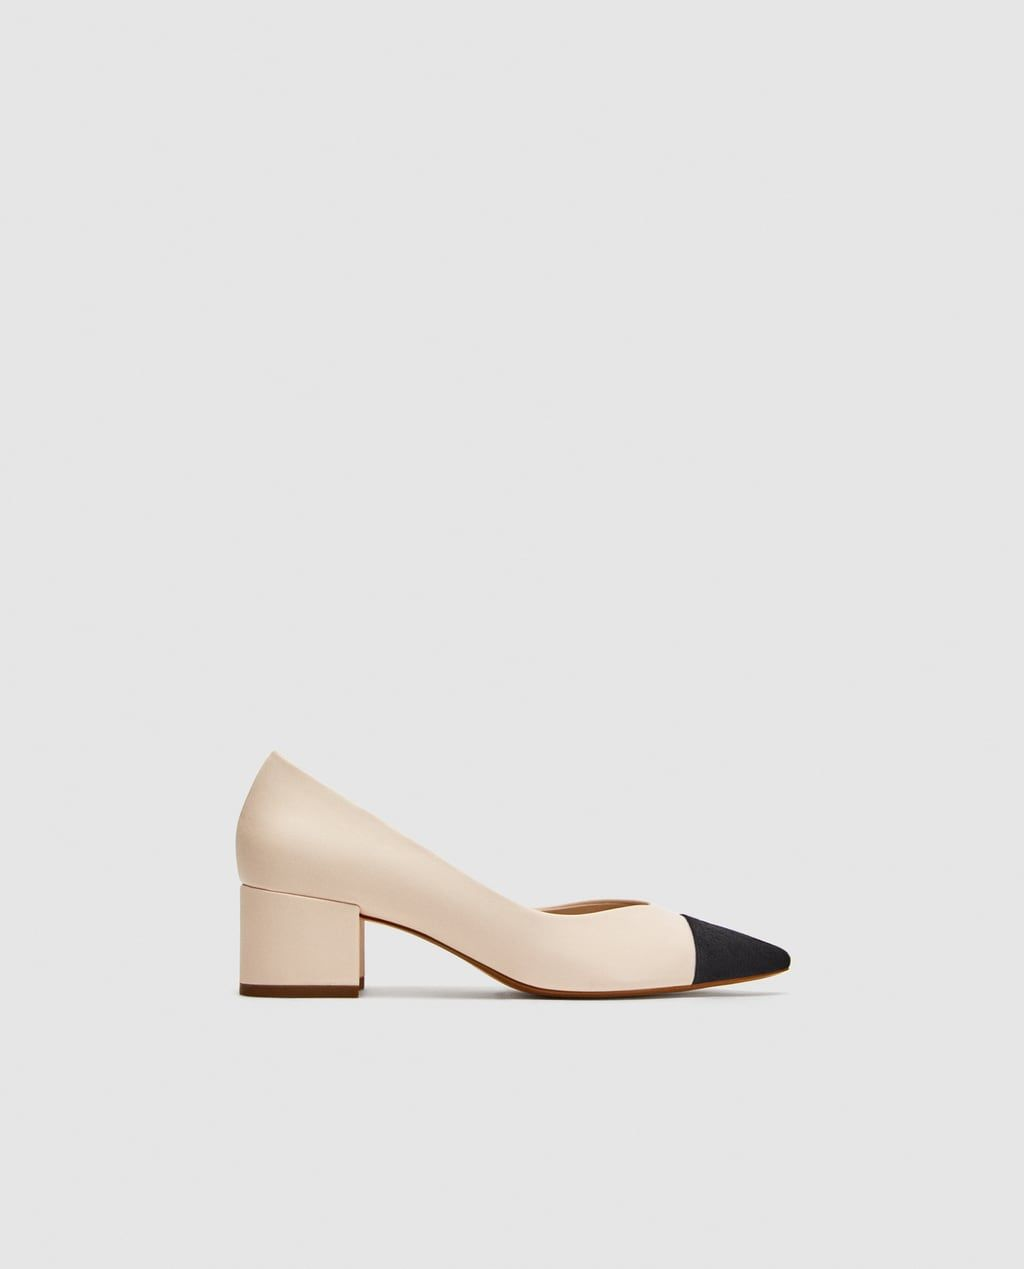 642739e7f19 Image 2 of POINTED MID-HEEL COURT SHOES from Zara POINTED MID-HEEL COURT